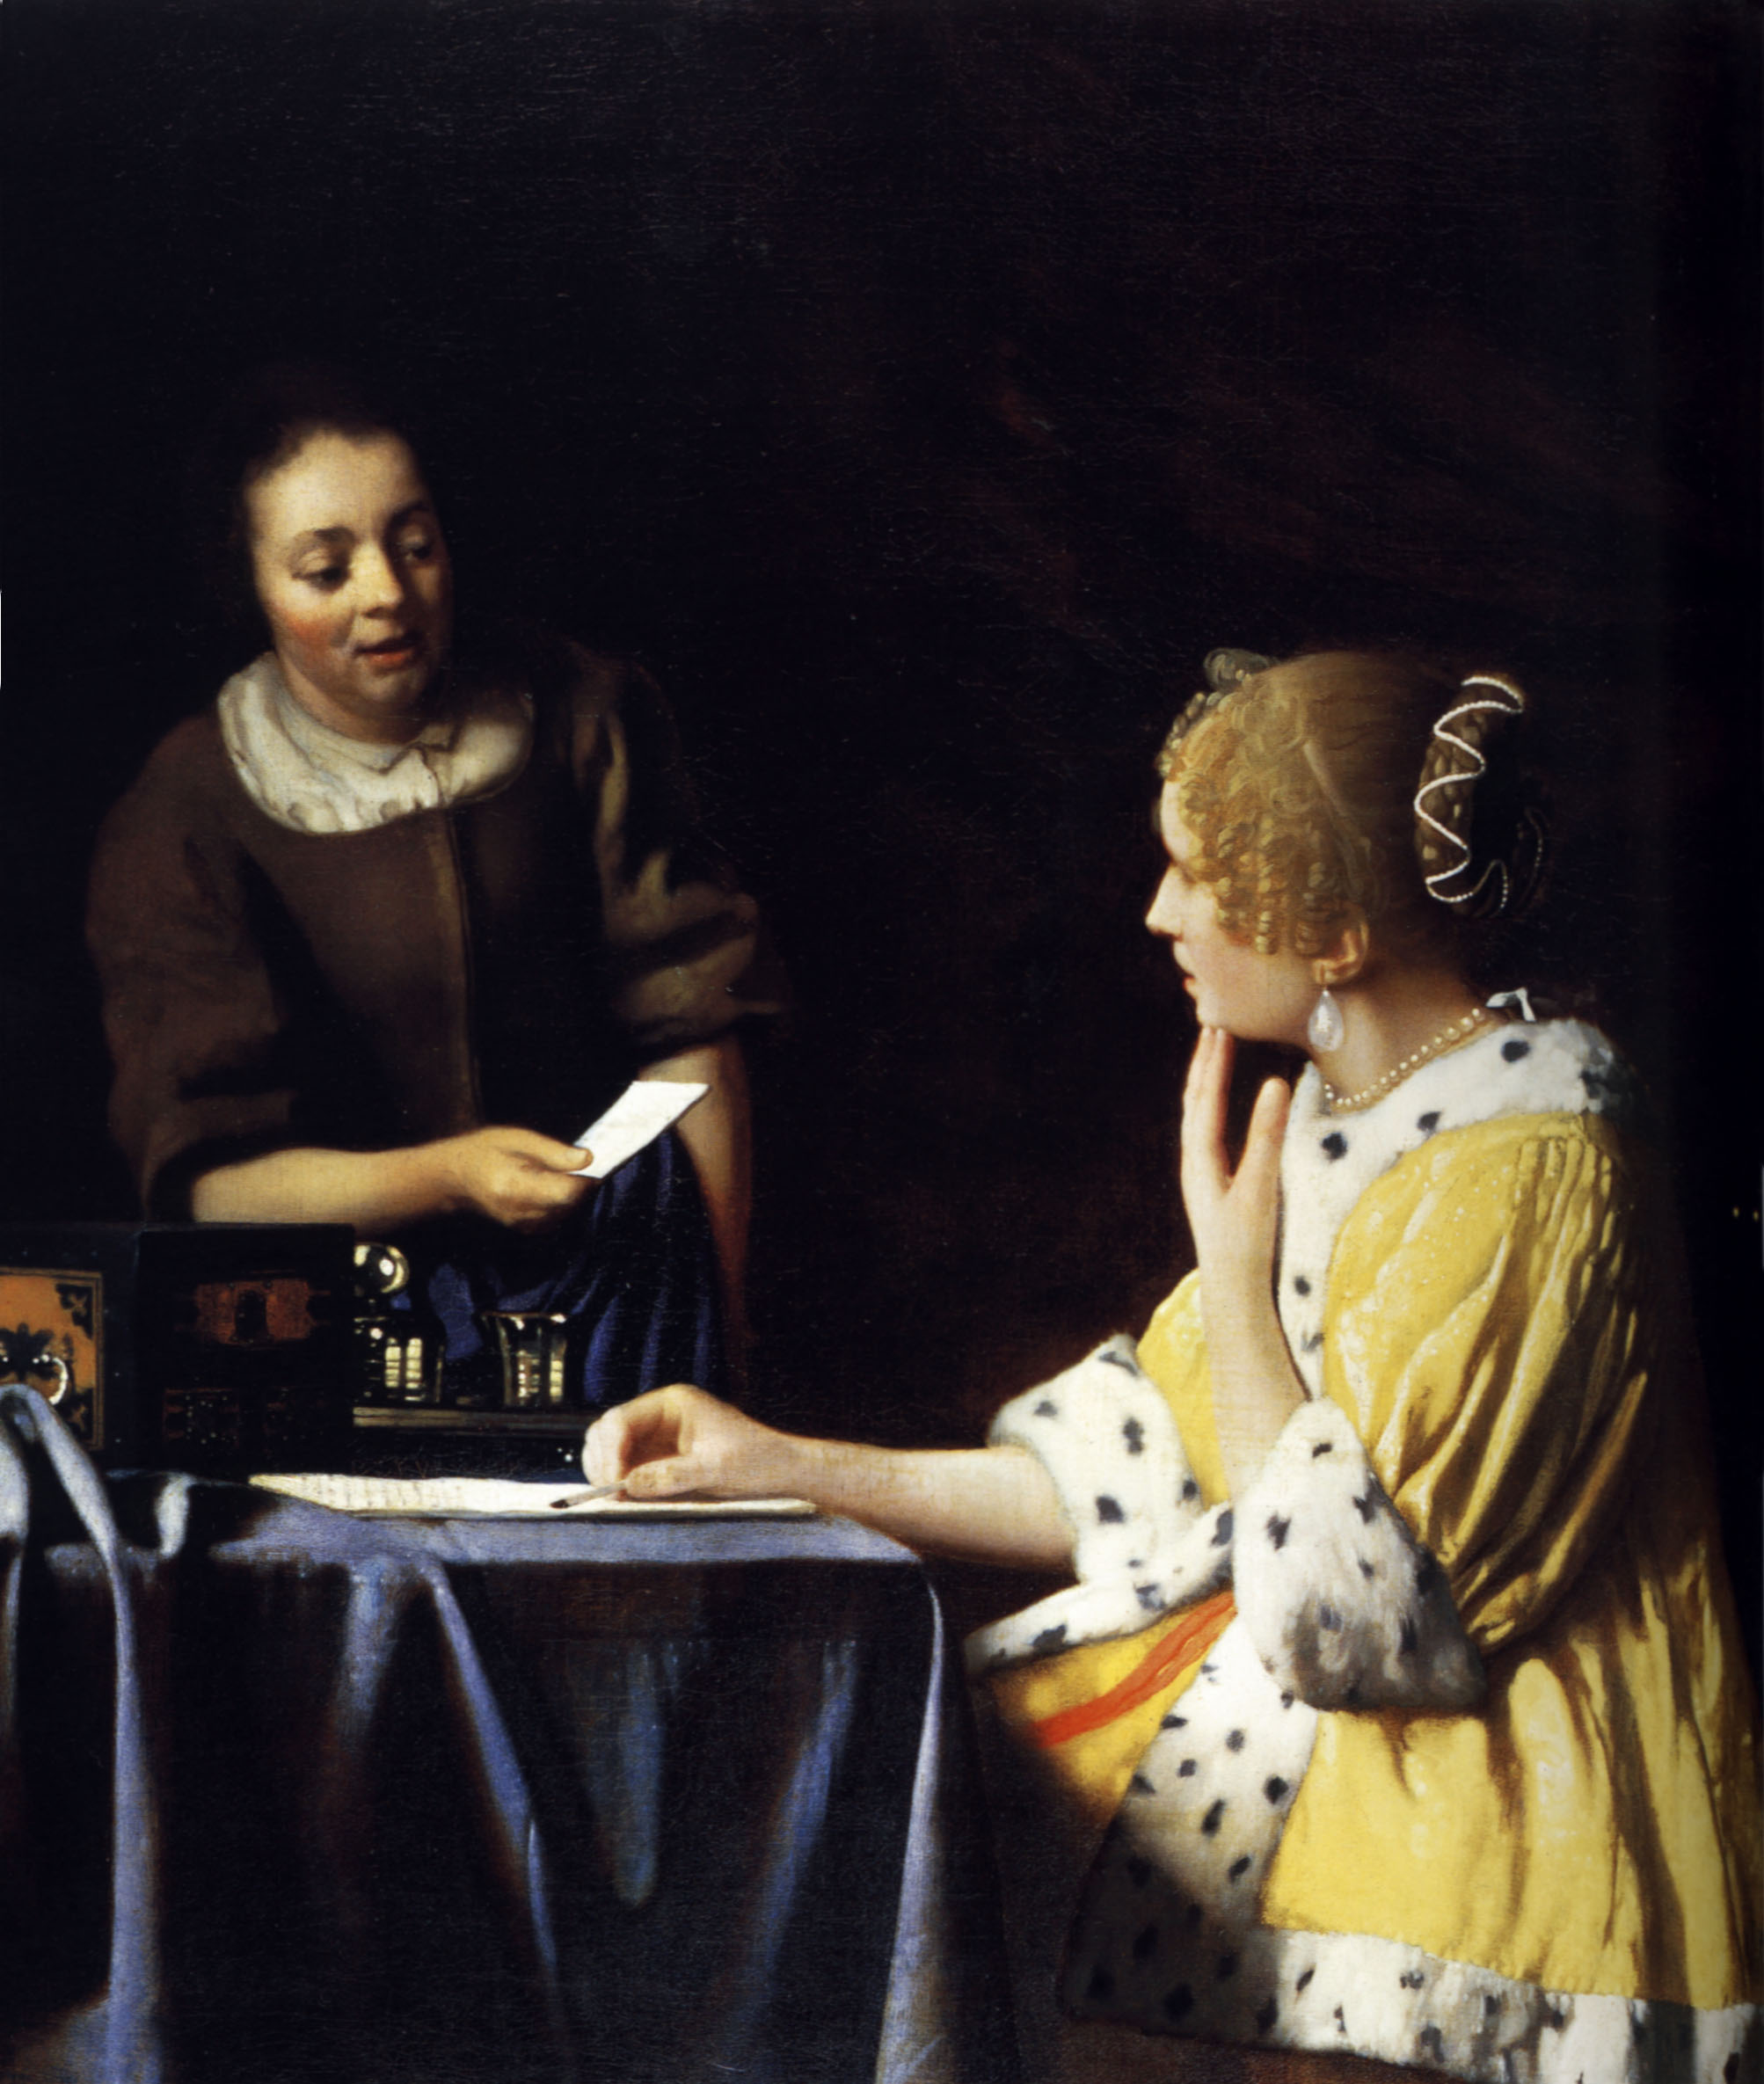 the frick collection includes vermeer's 1677 mistress and maid painting